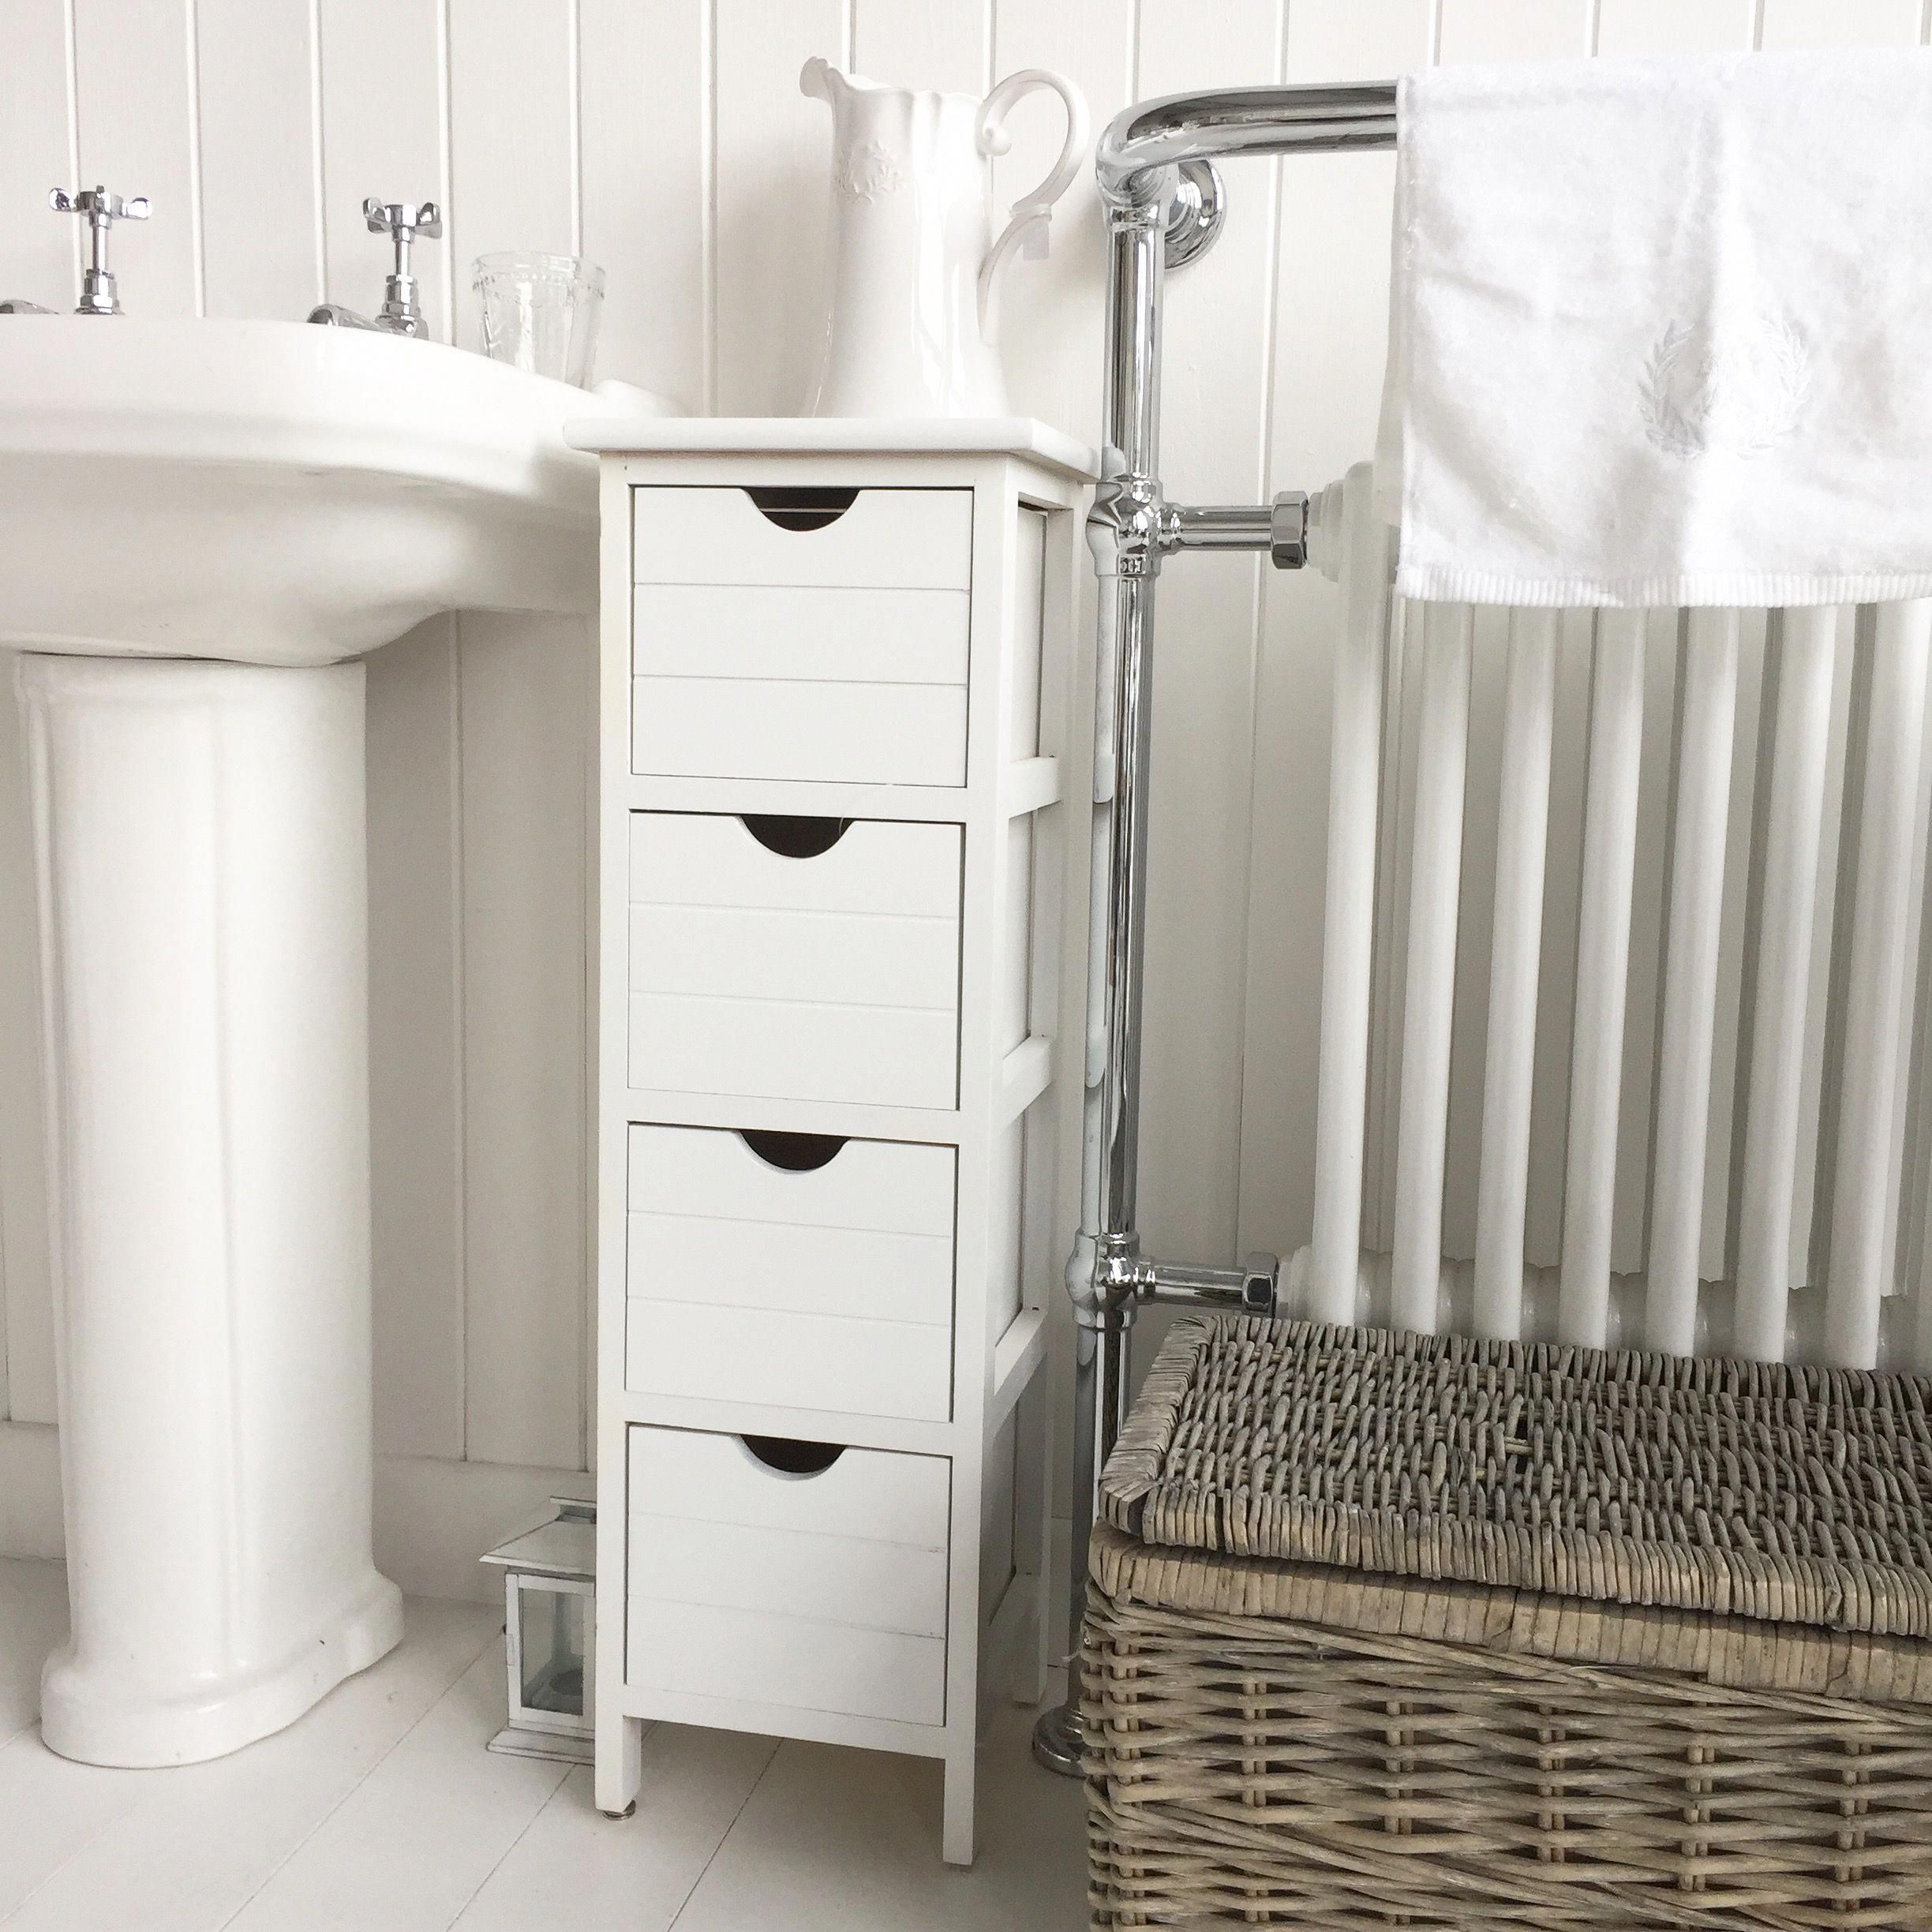 Narrow Bathroom Storage With The Dorset Slim Range Of Furniture Bathroomcupboards Bathroom Furniture Narrow Bathroom Storage White Bathroom Furniture